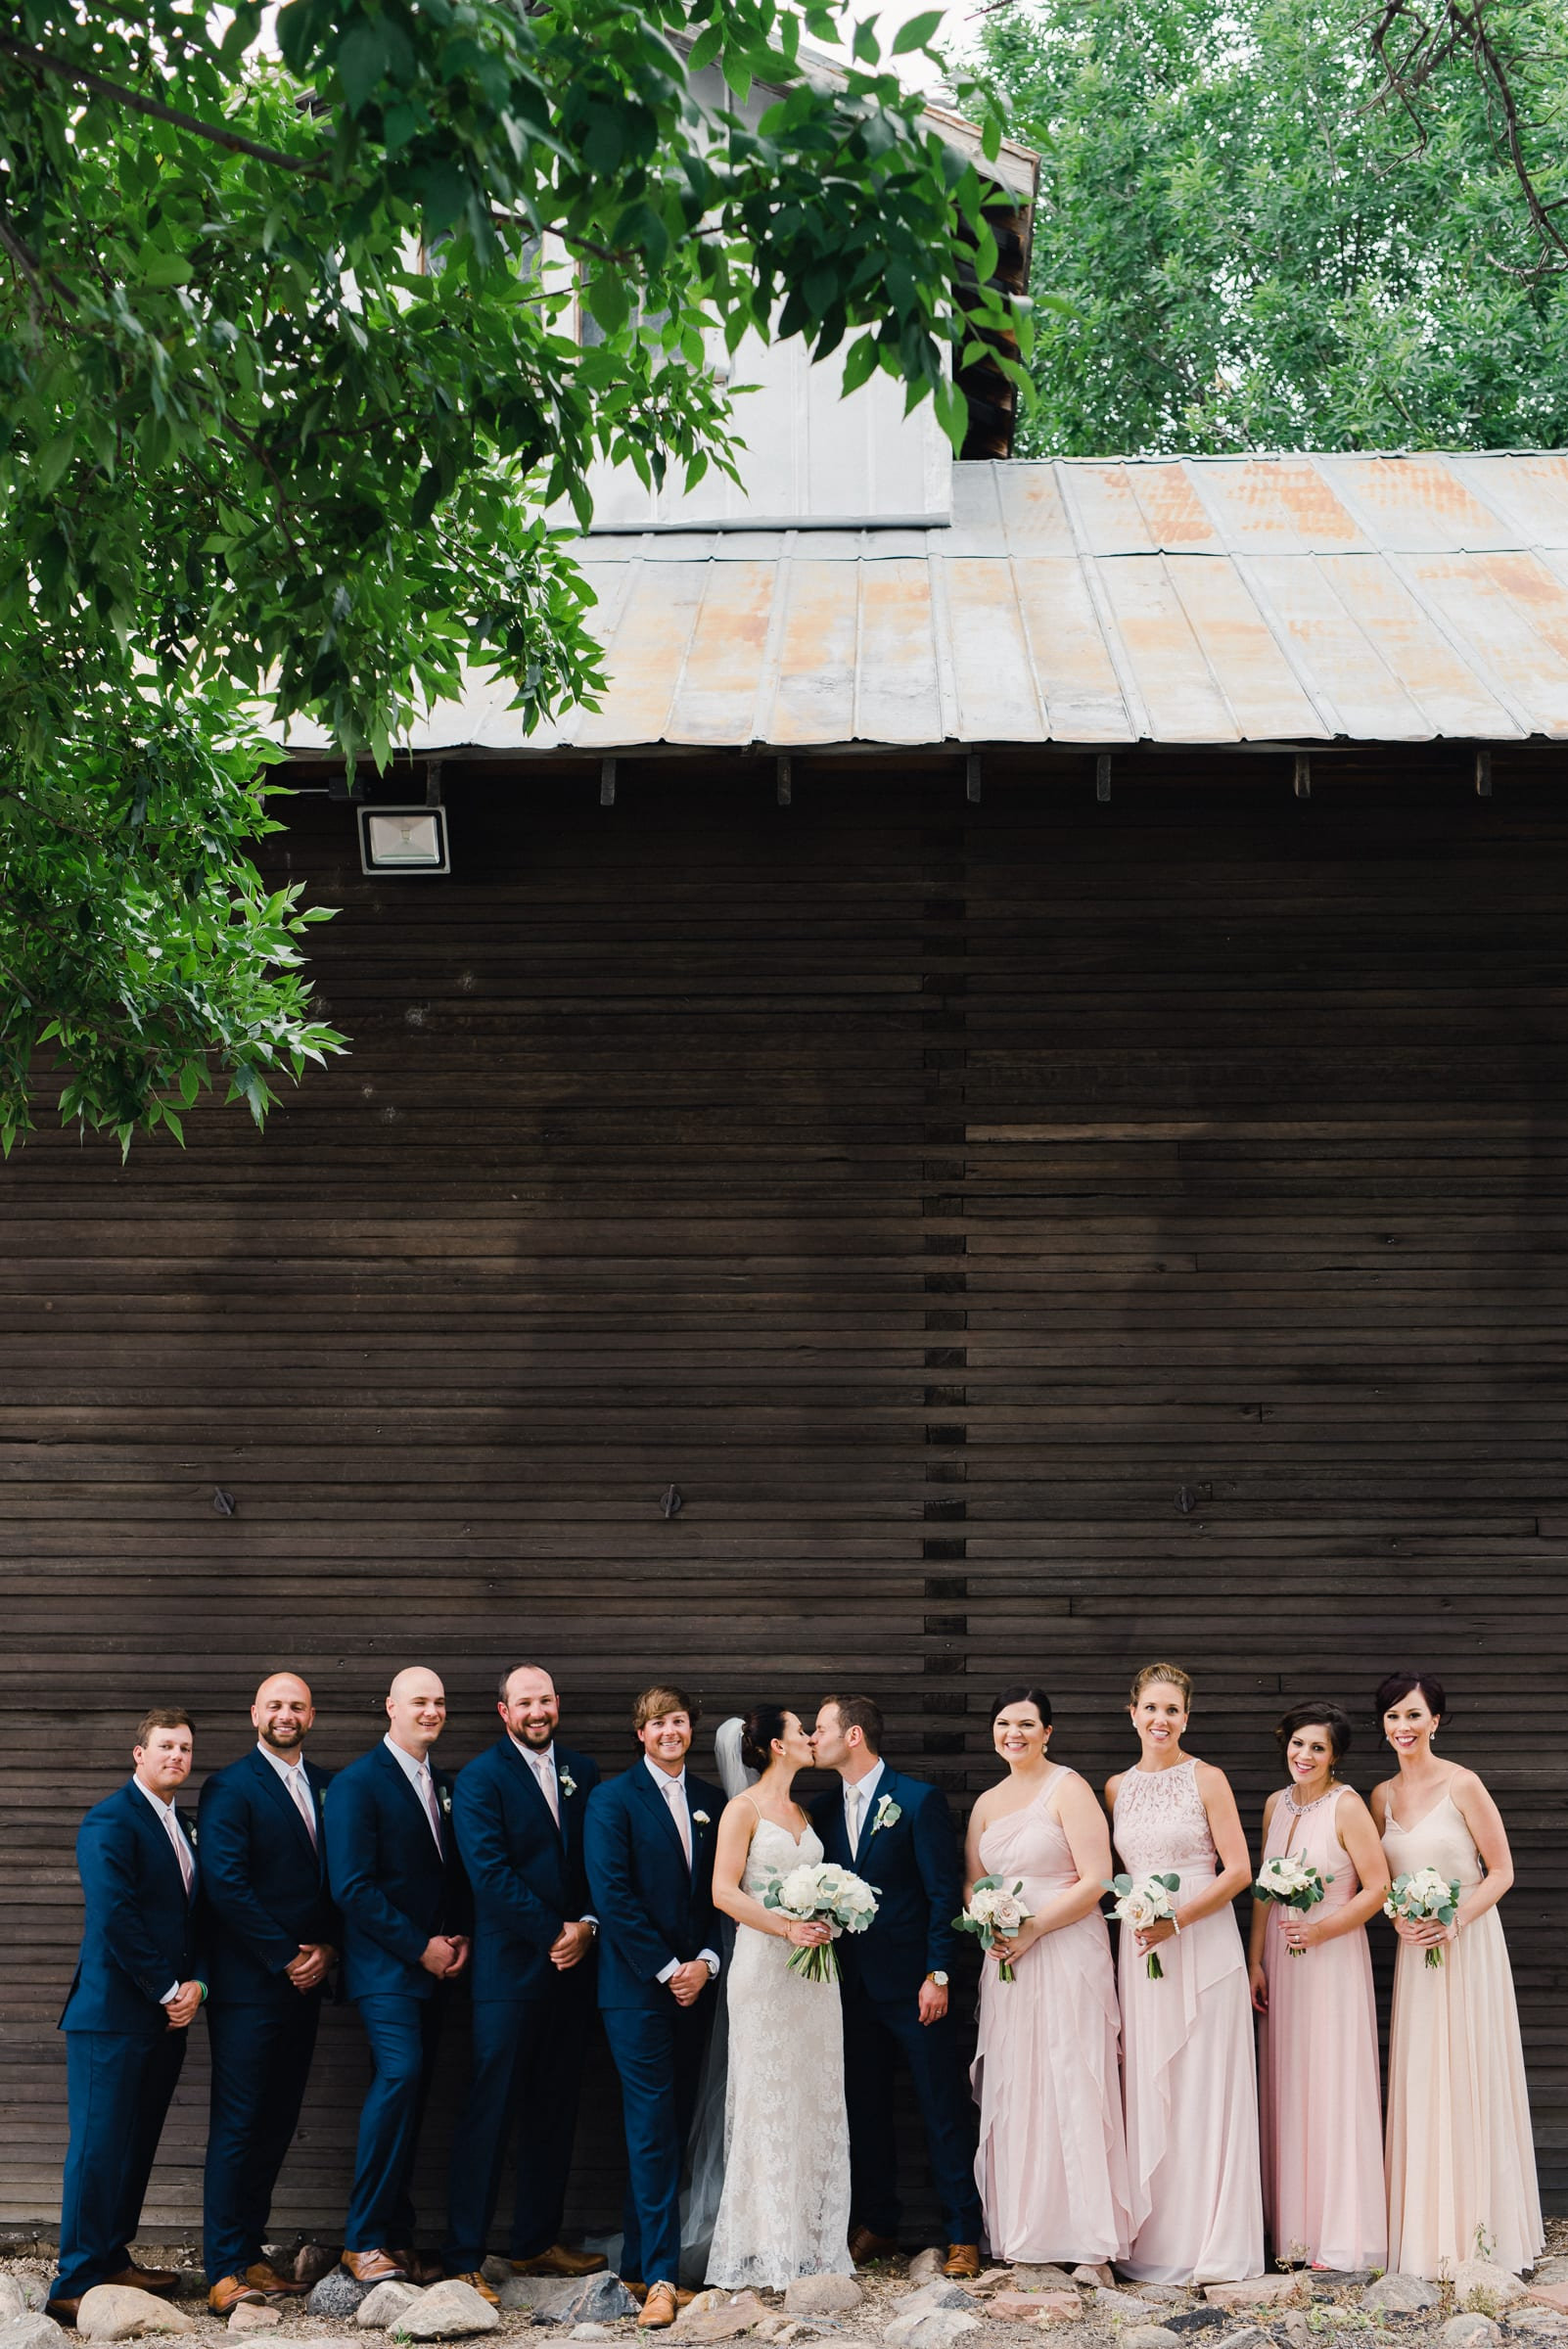 Rustic Barn Colorado Wedding Venue by Josie V Photography